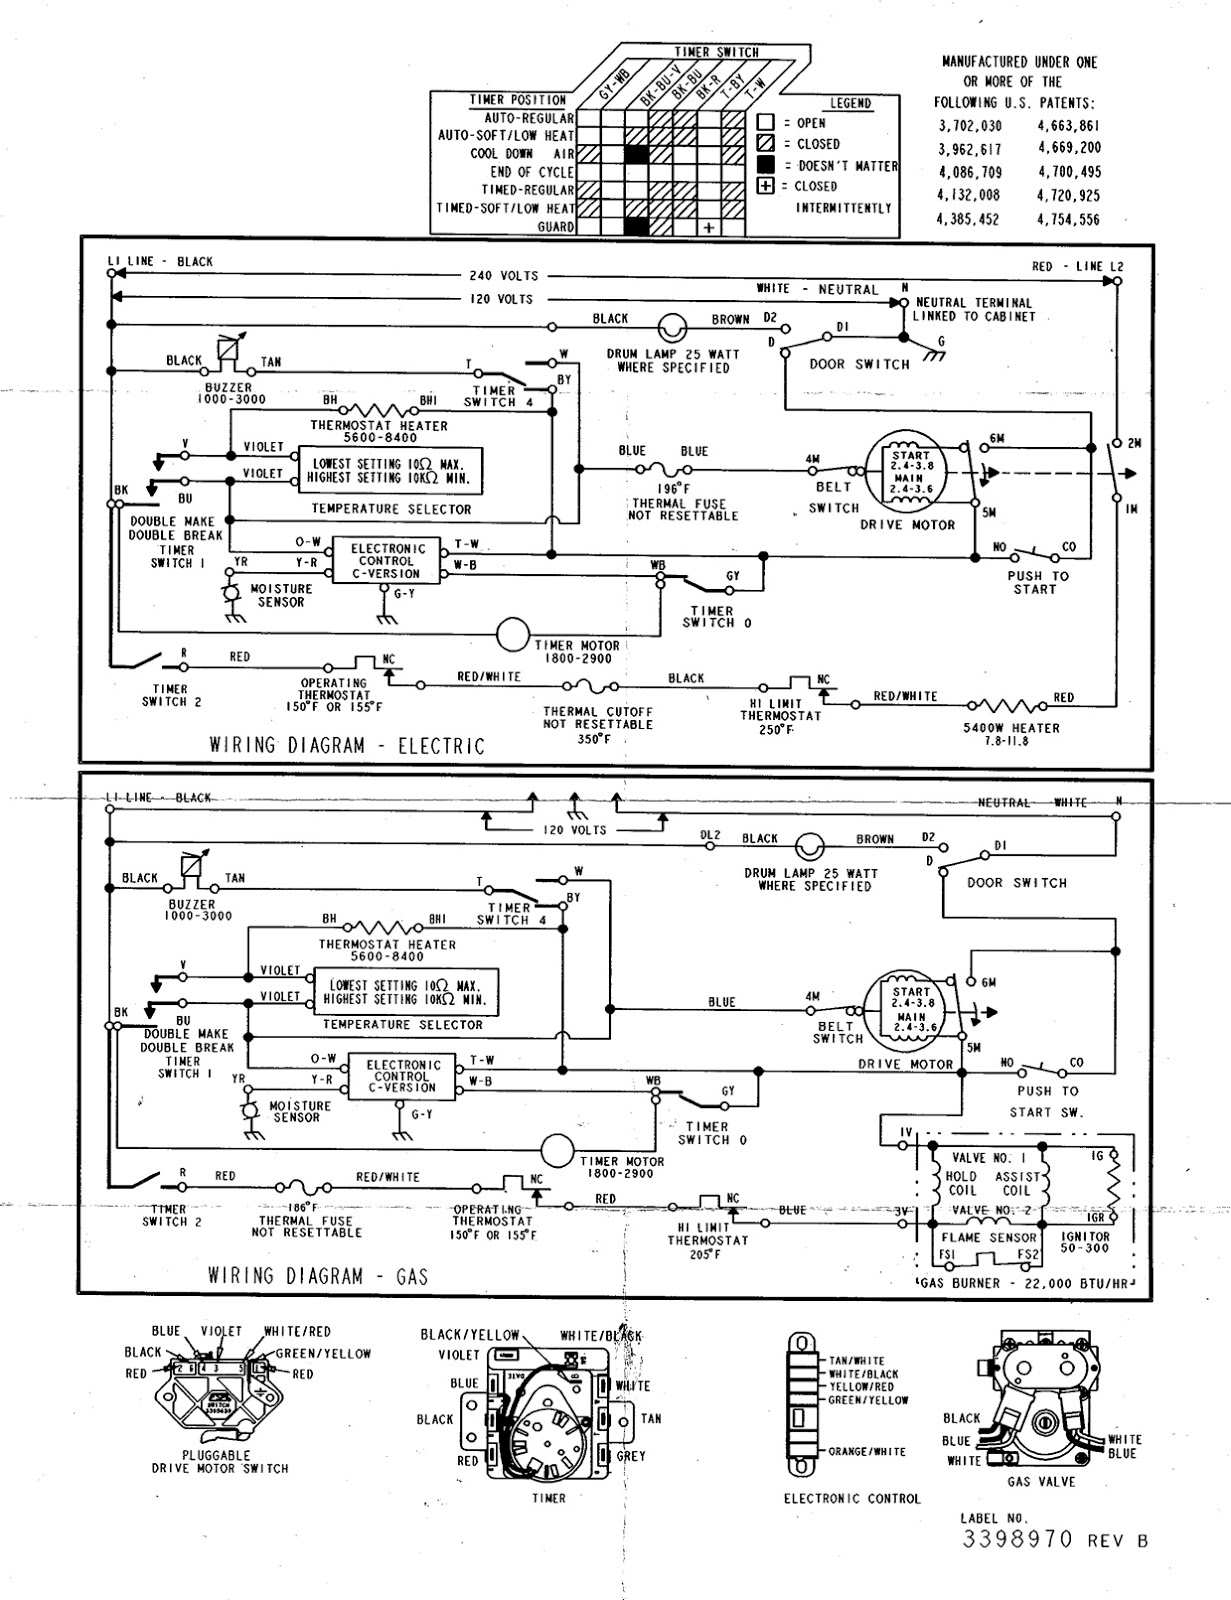 How To Fix A Kenmore 90 Series Gas Dryer That Will Not Heat Share Schematic Wiring Diagram Fuse Screw For Model 11076902693